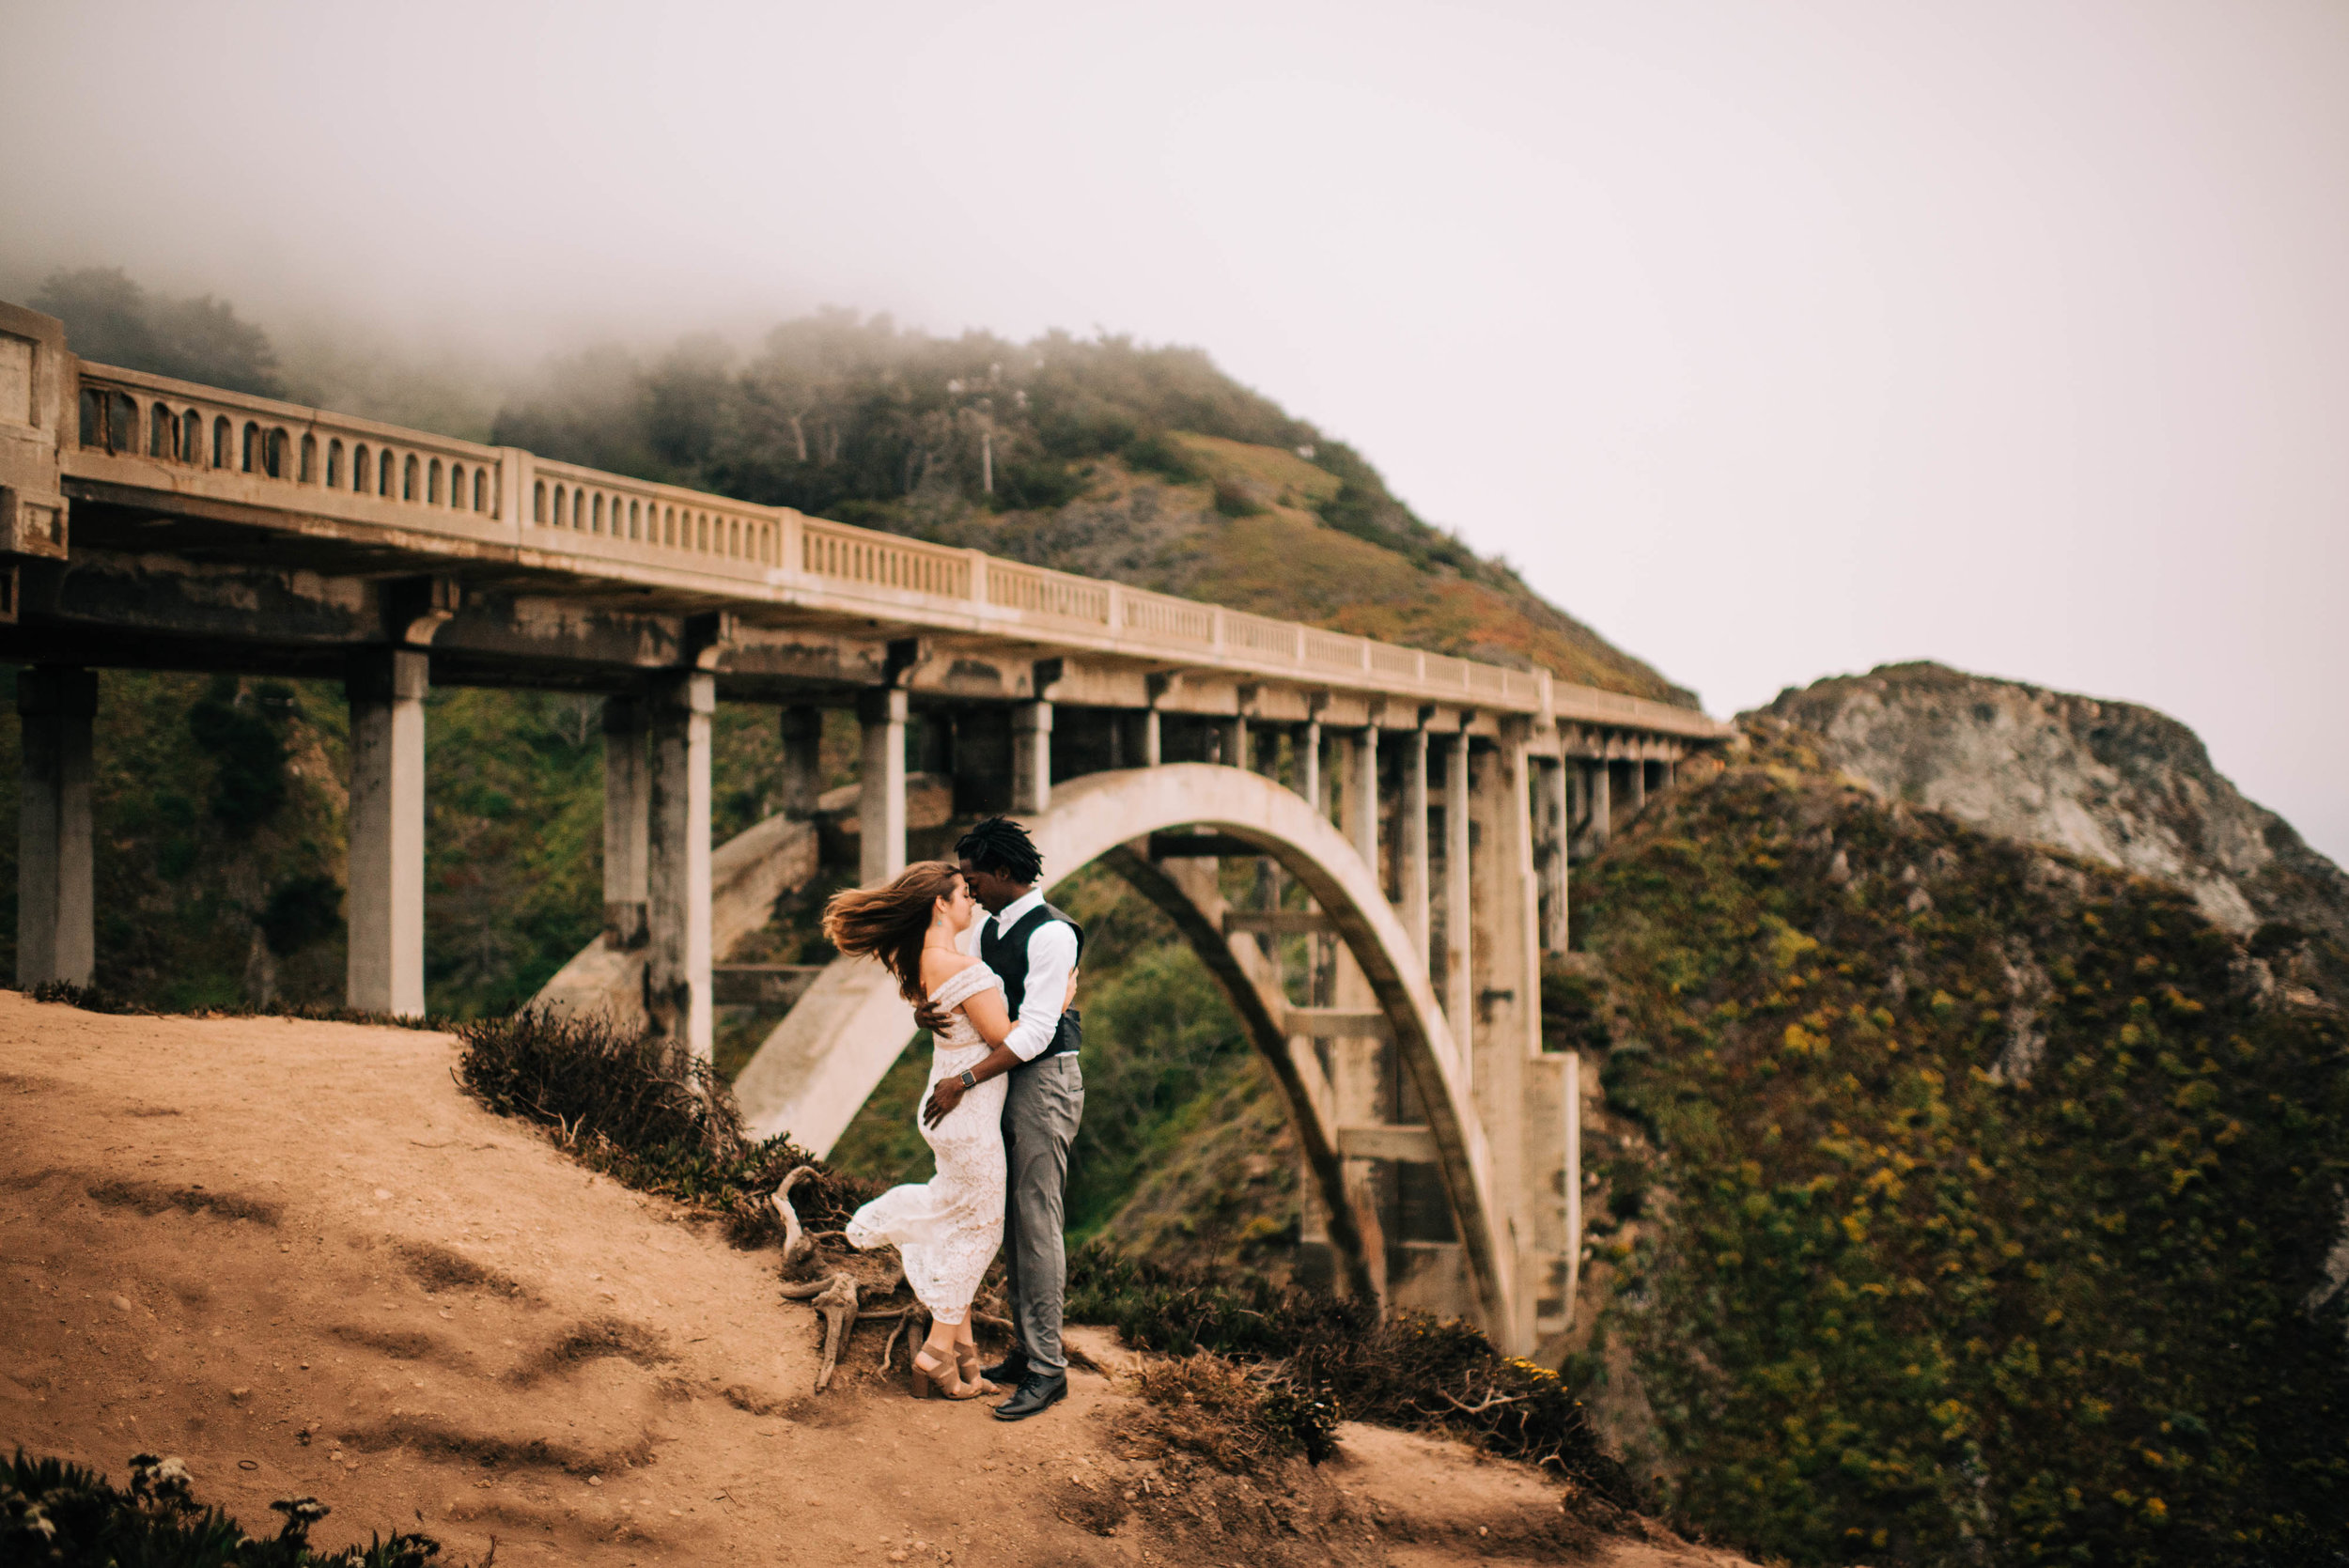 atlanta georgia big sur san francisco california bay area sf oakland wedding portrait adventure engageement nontraditional tattooed couple photographer-124.jpg